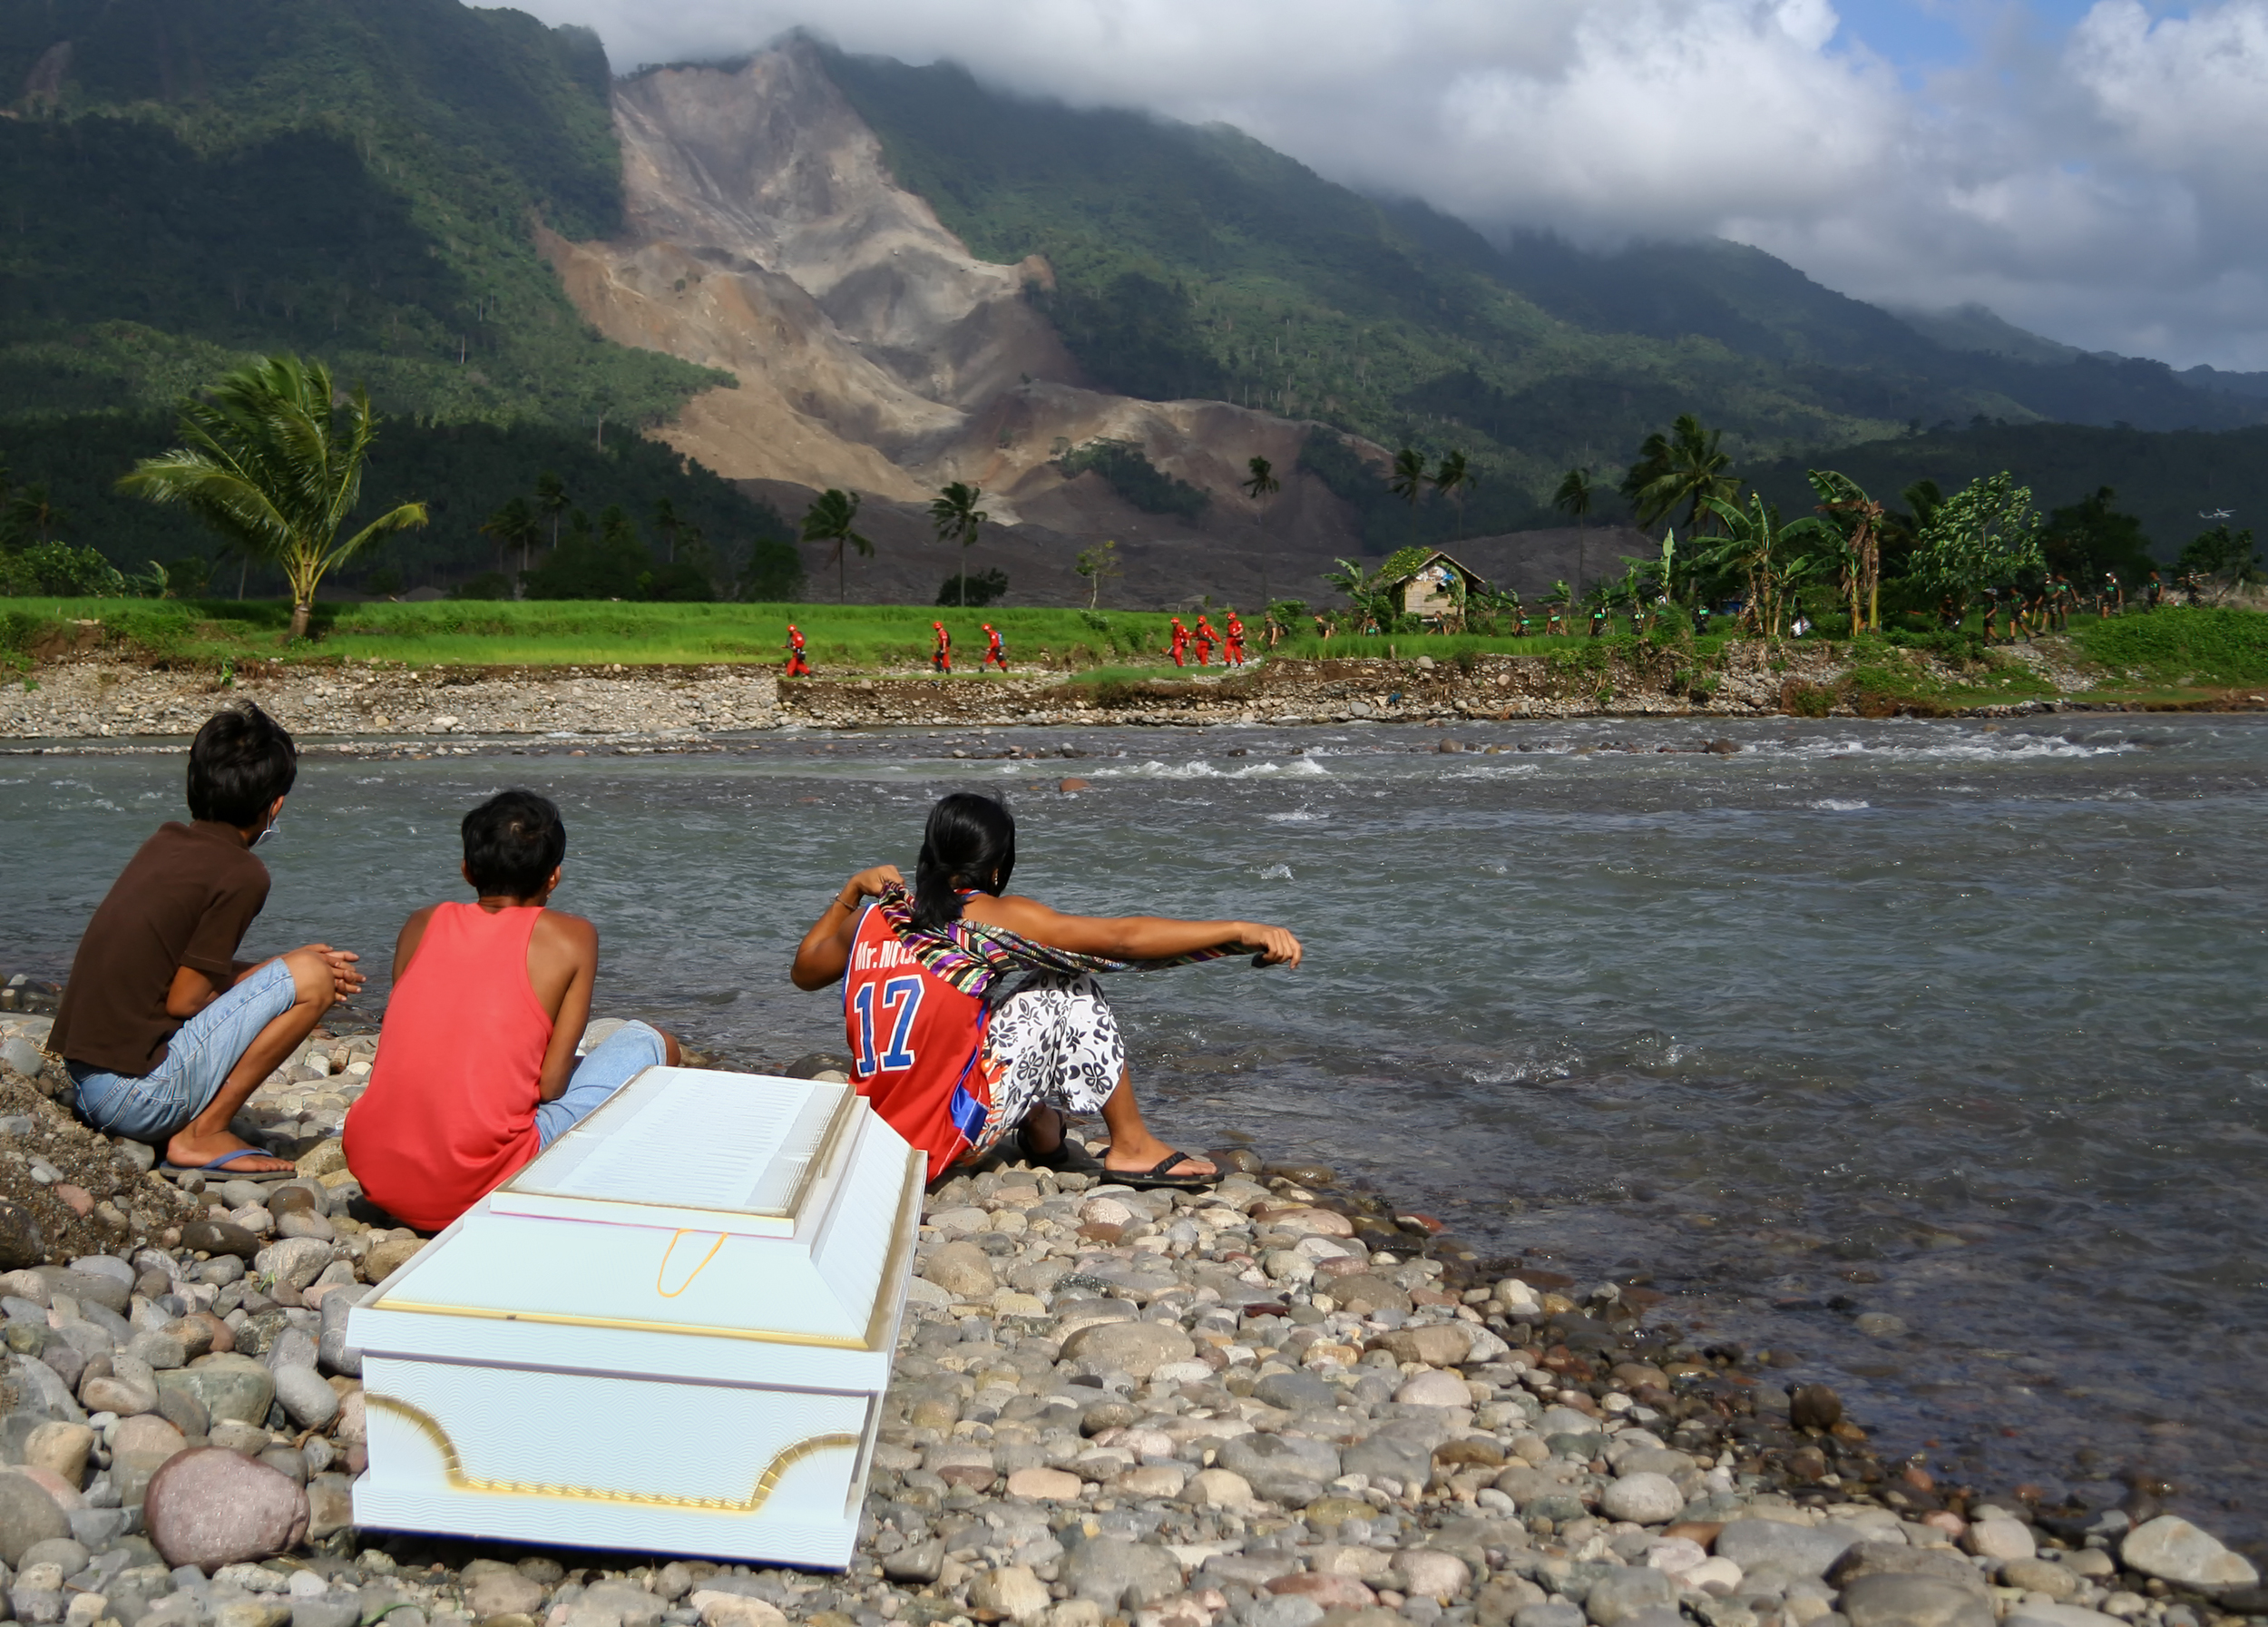 Awaiting the arrival of a family member killed in a landslide on the island of Leyte, Philippines.